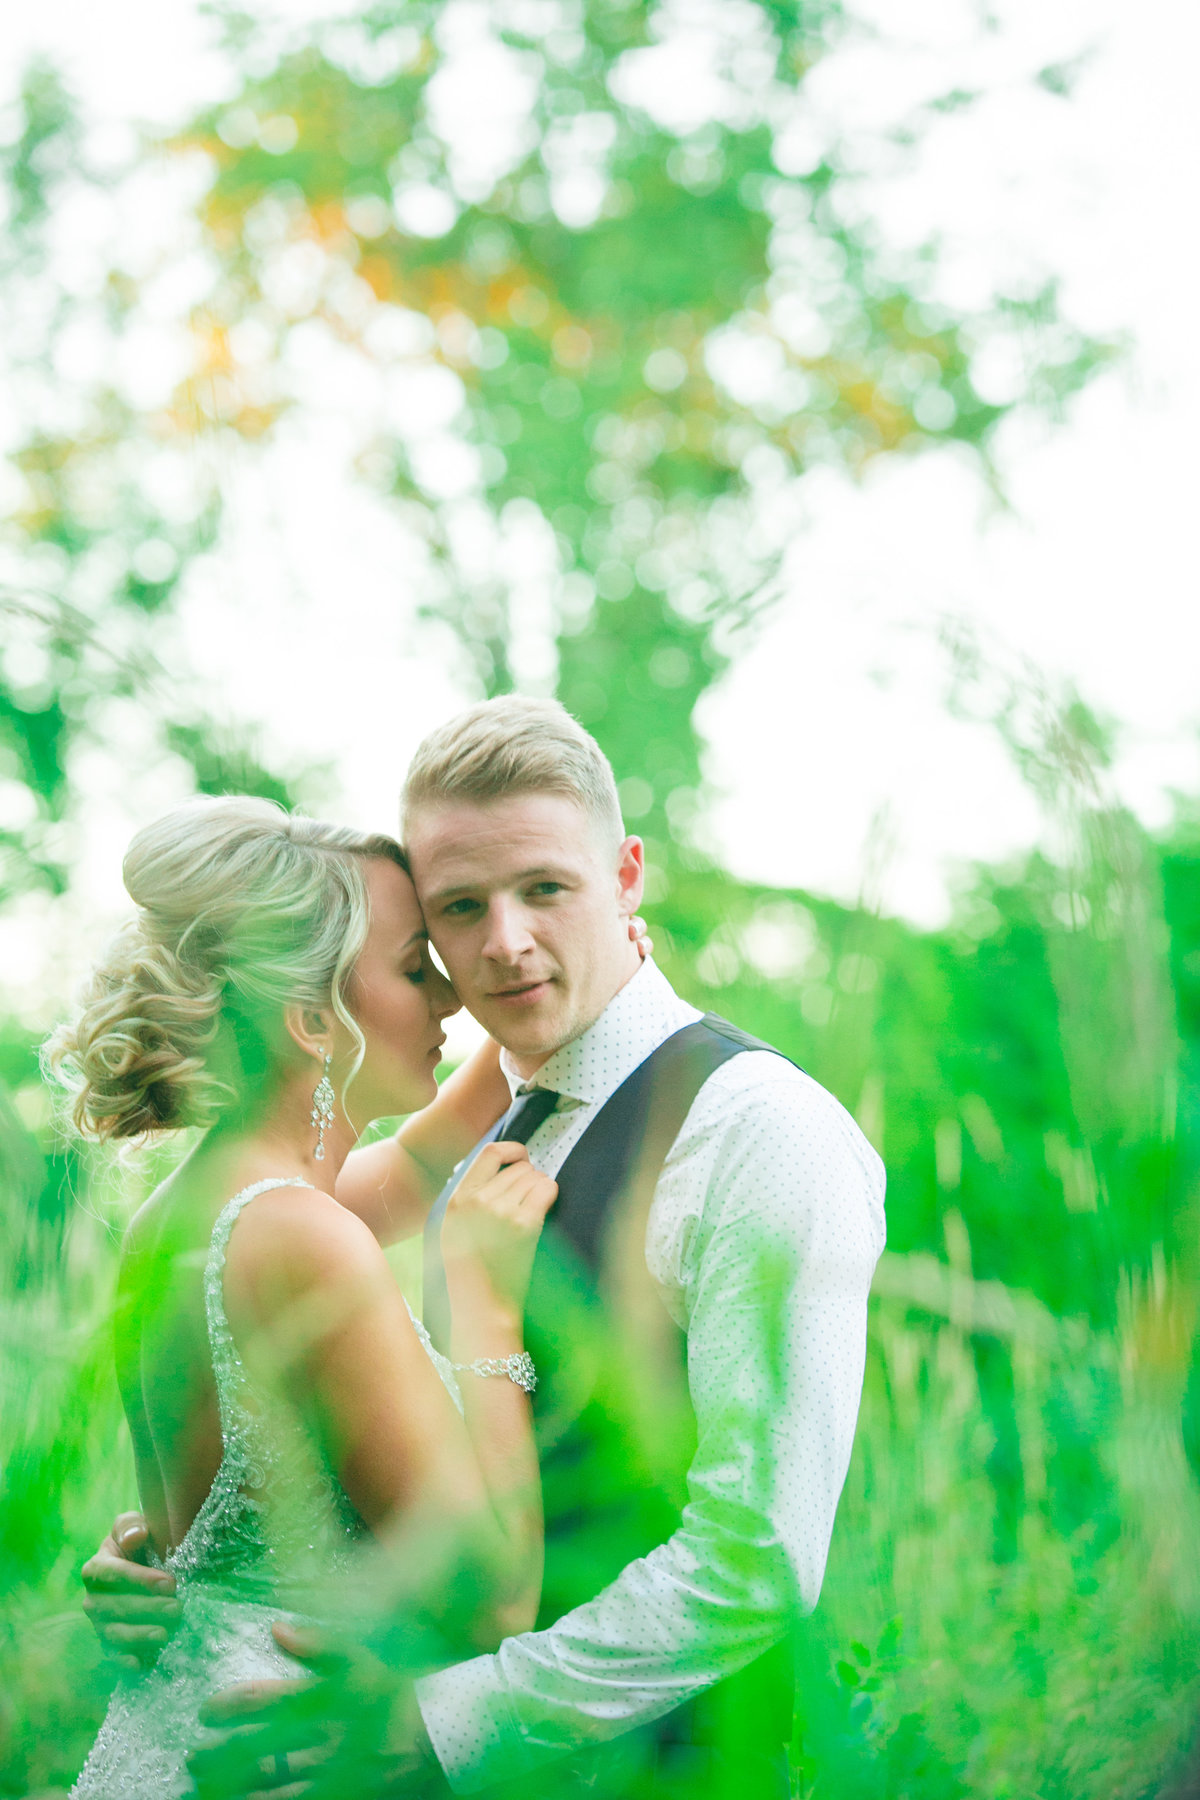 Jordan & Taylor's Outdoor Wisconsin Northwoods Wedding Photos by Amenson Studio-0229